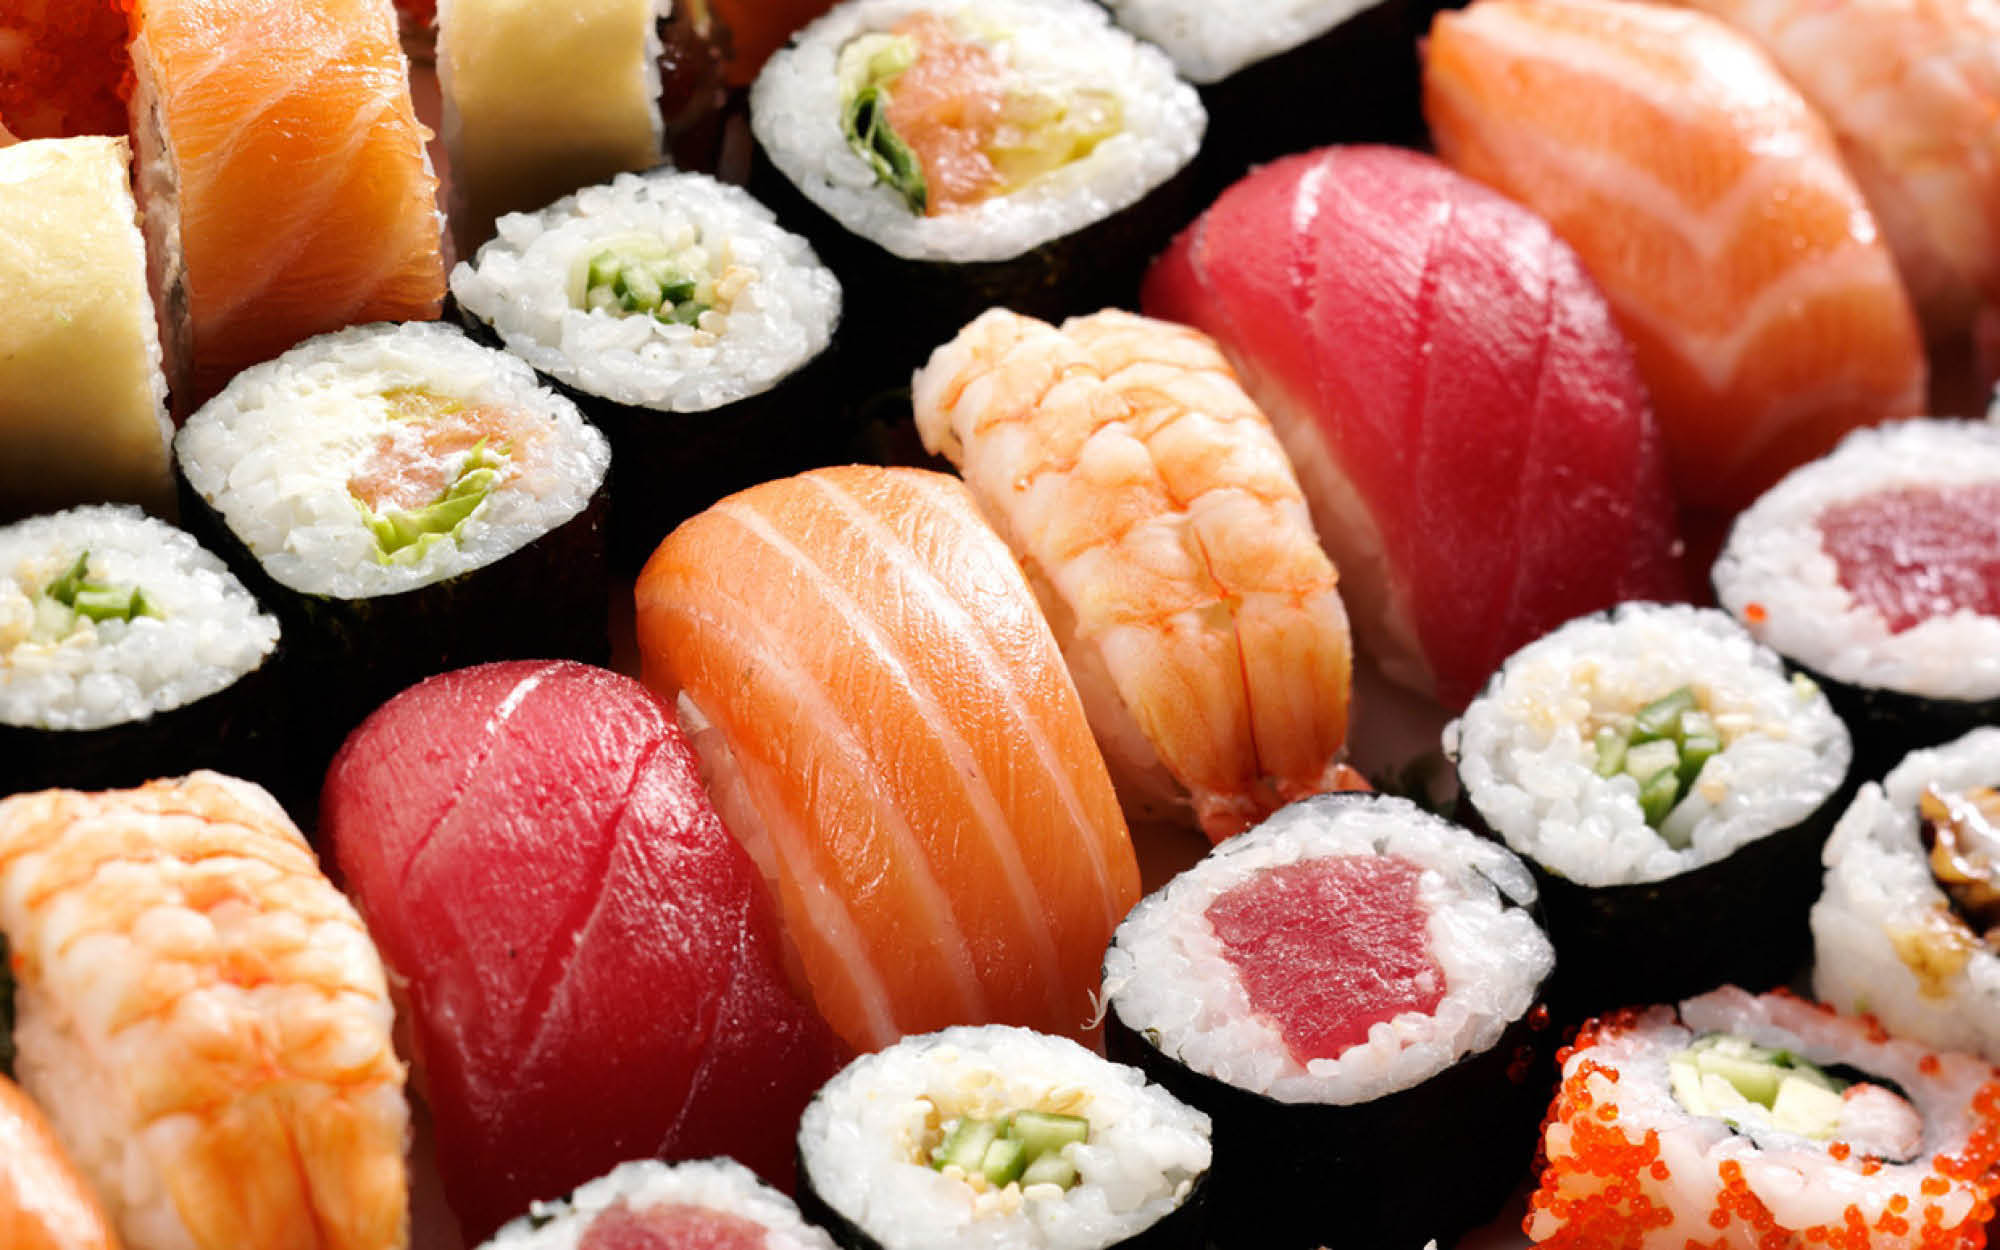 Antioch Sushi & Seafood Buffet offers a variety of sushi rolls and sashimi